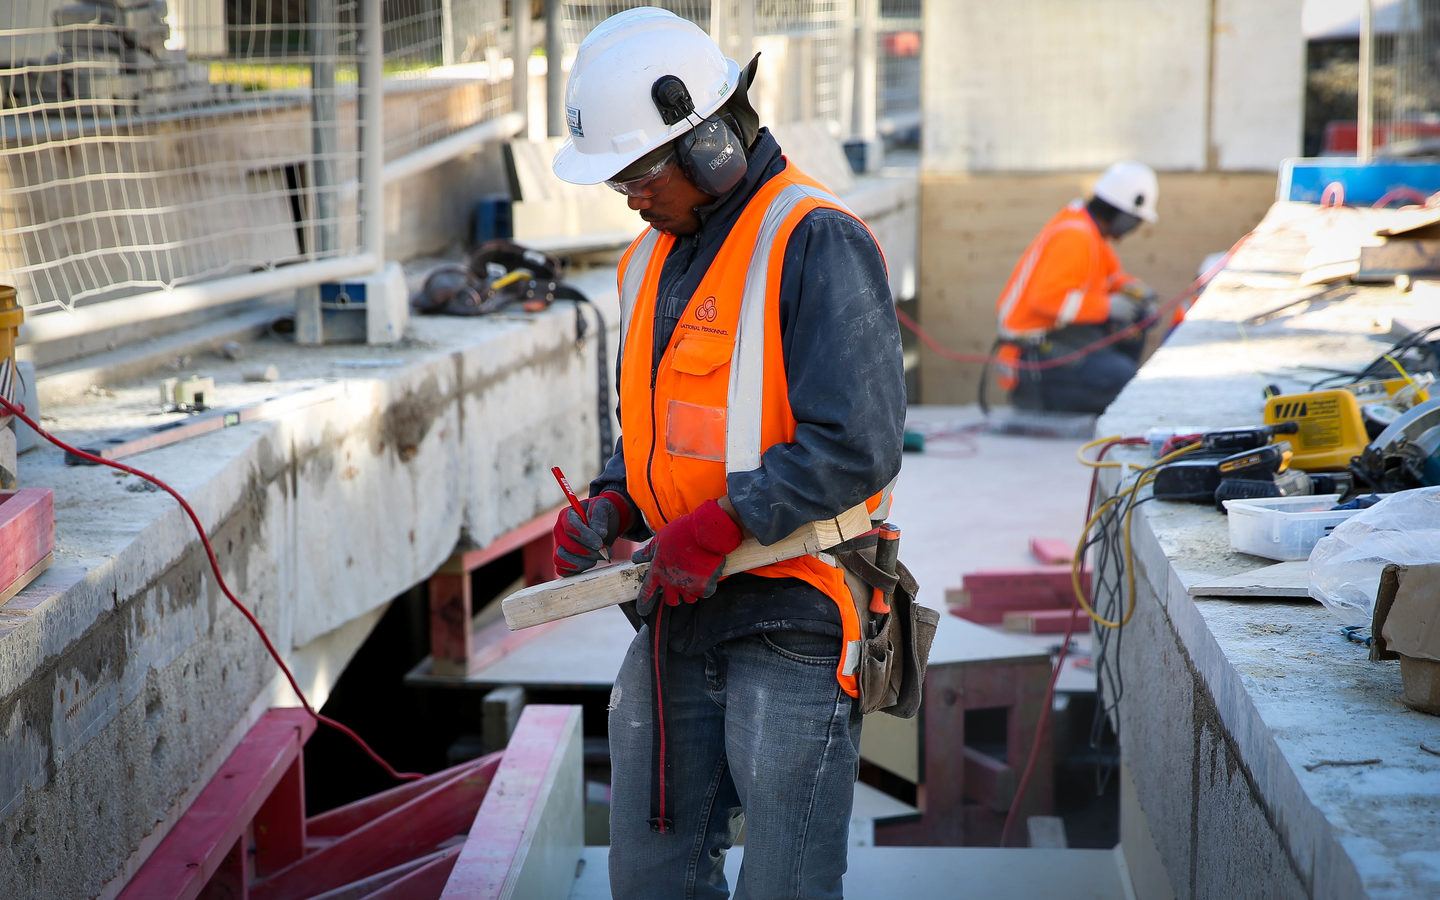 The construction industry has boosted the economy and employment rates